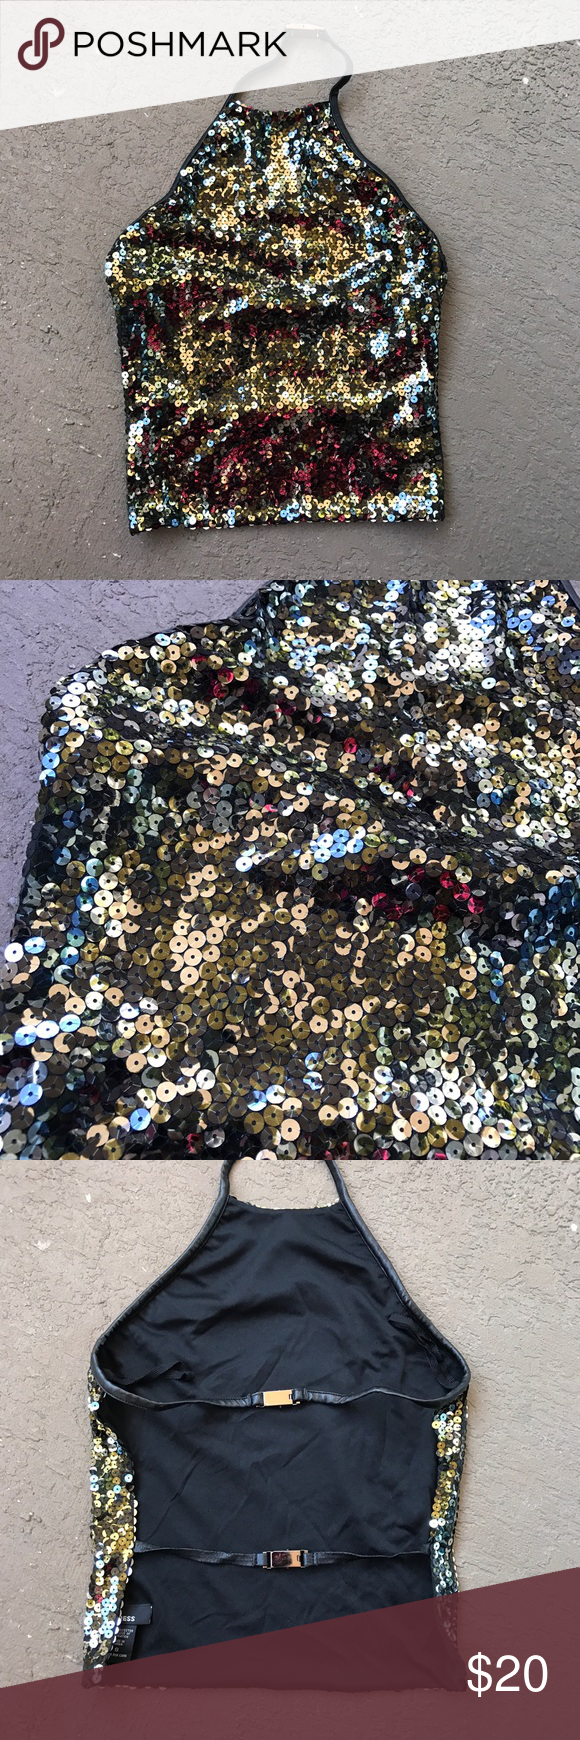 Express Sequin Open Back Halter Top This top is in great condition except the bottom back strap. It is cracking a little but tons of life left. The sequins reflect different colors in different lightings. Fake leather straps that clip together. Express Tops Tank Tops